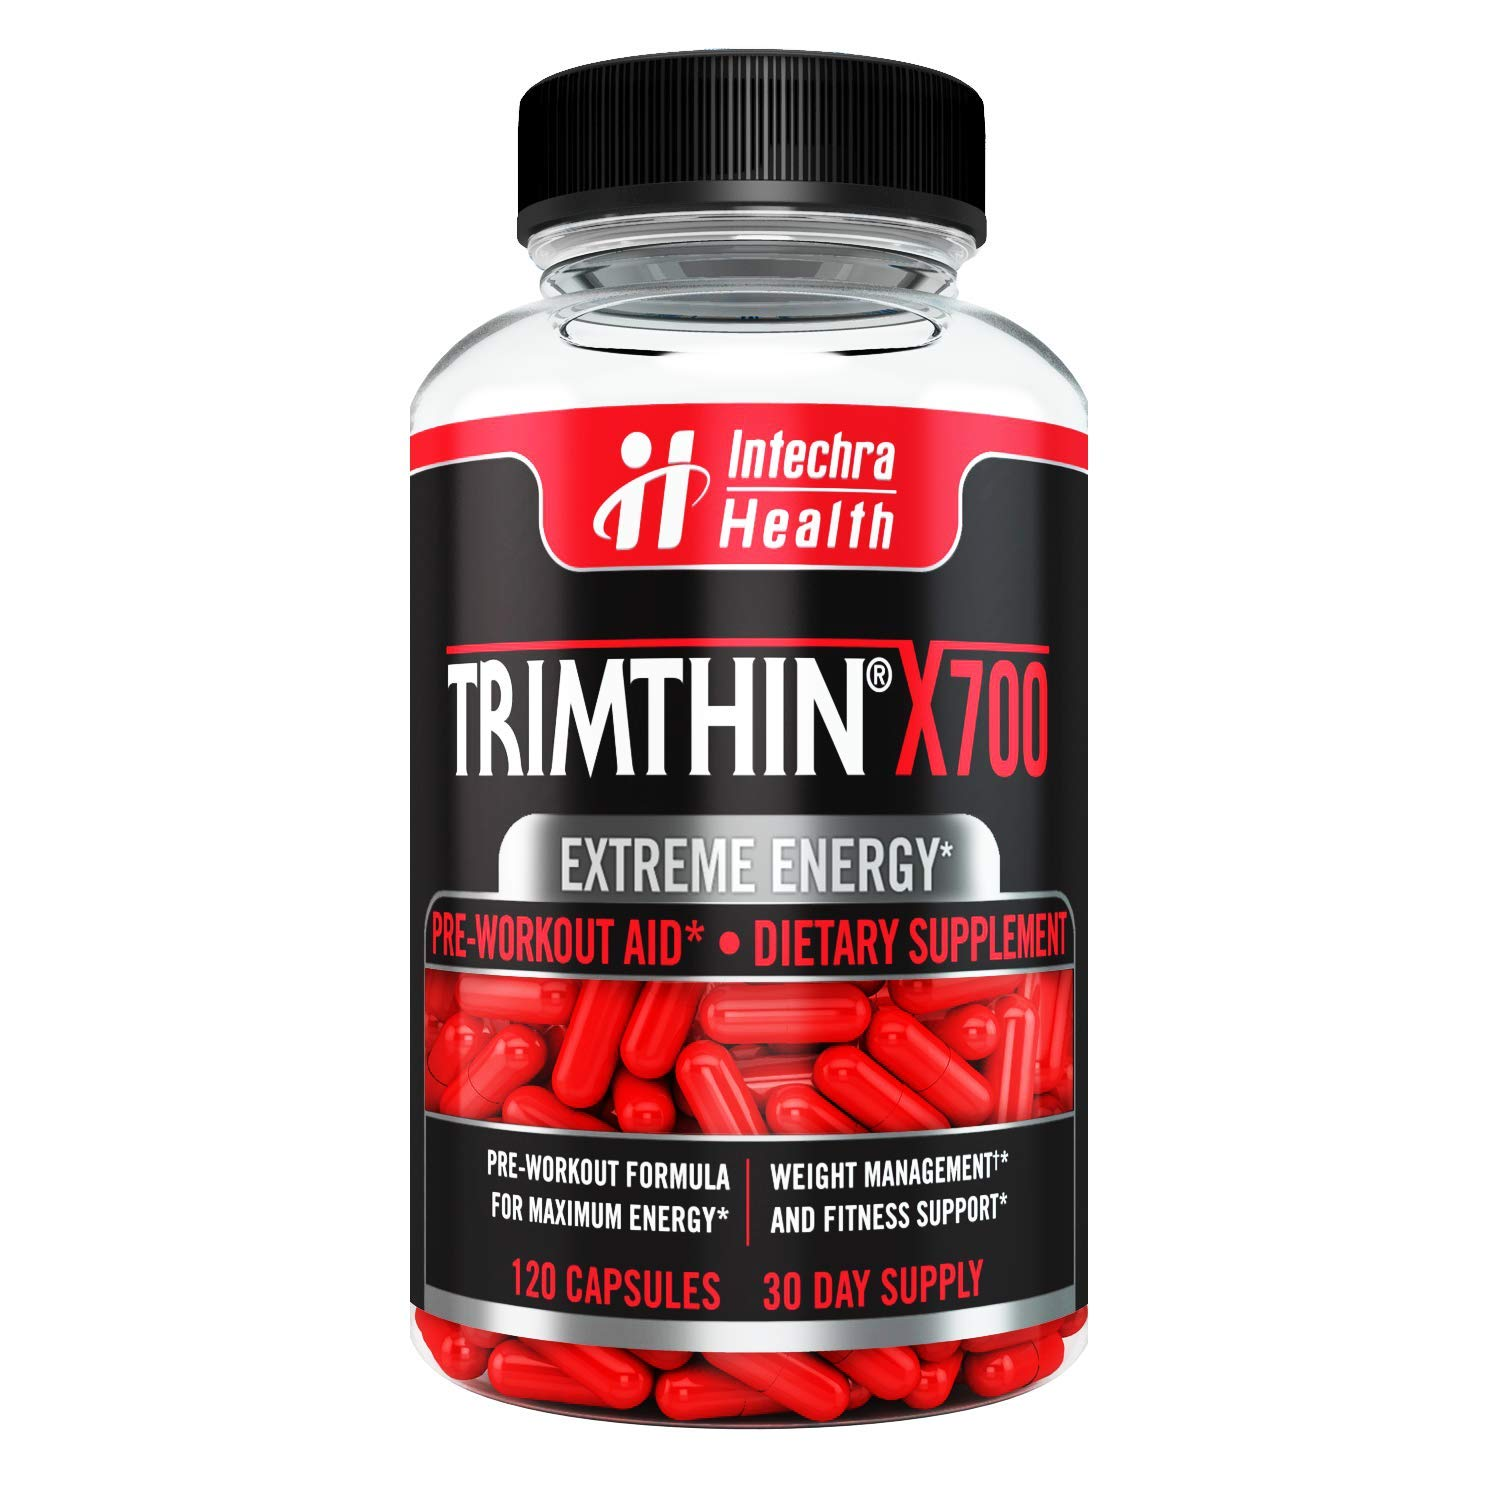 Trimthin X700 Thermogenic Diet Pills with Maximum Energy Manufactured in USA from Clinically Researched Ingredients 120 Capsules by TrimThin